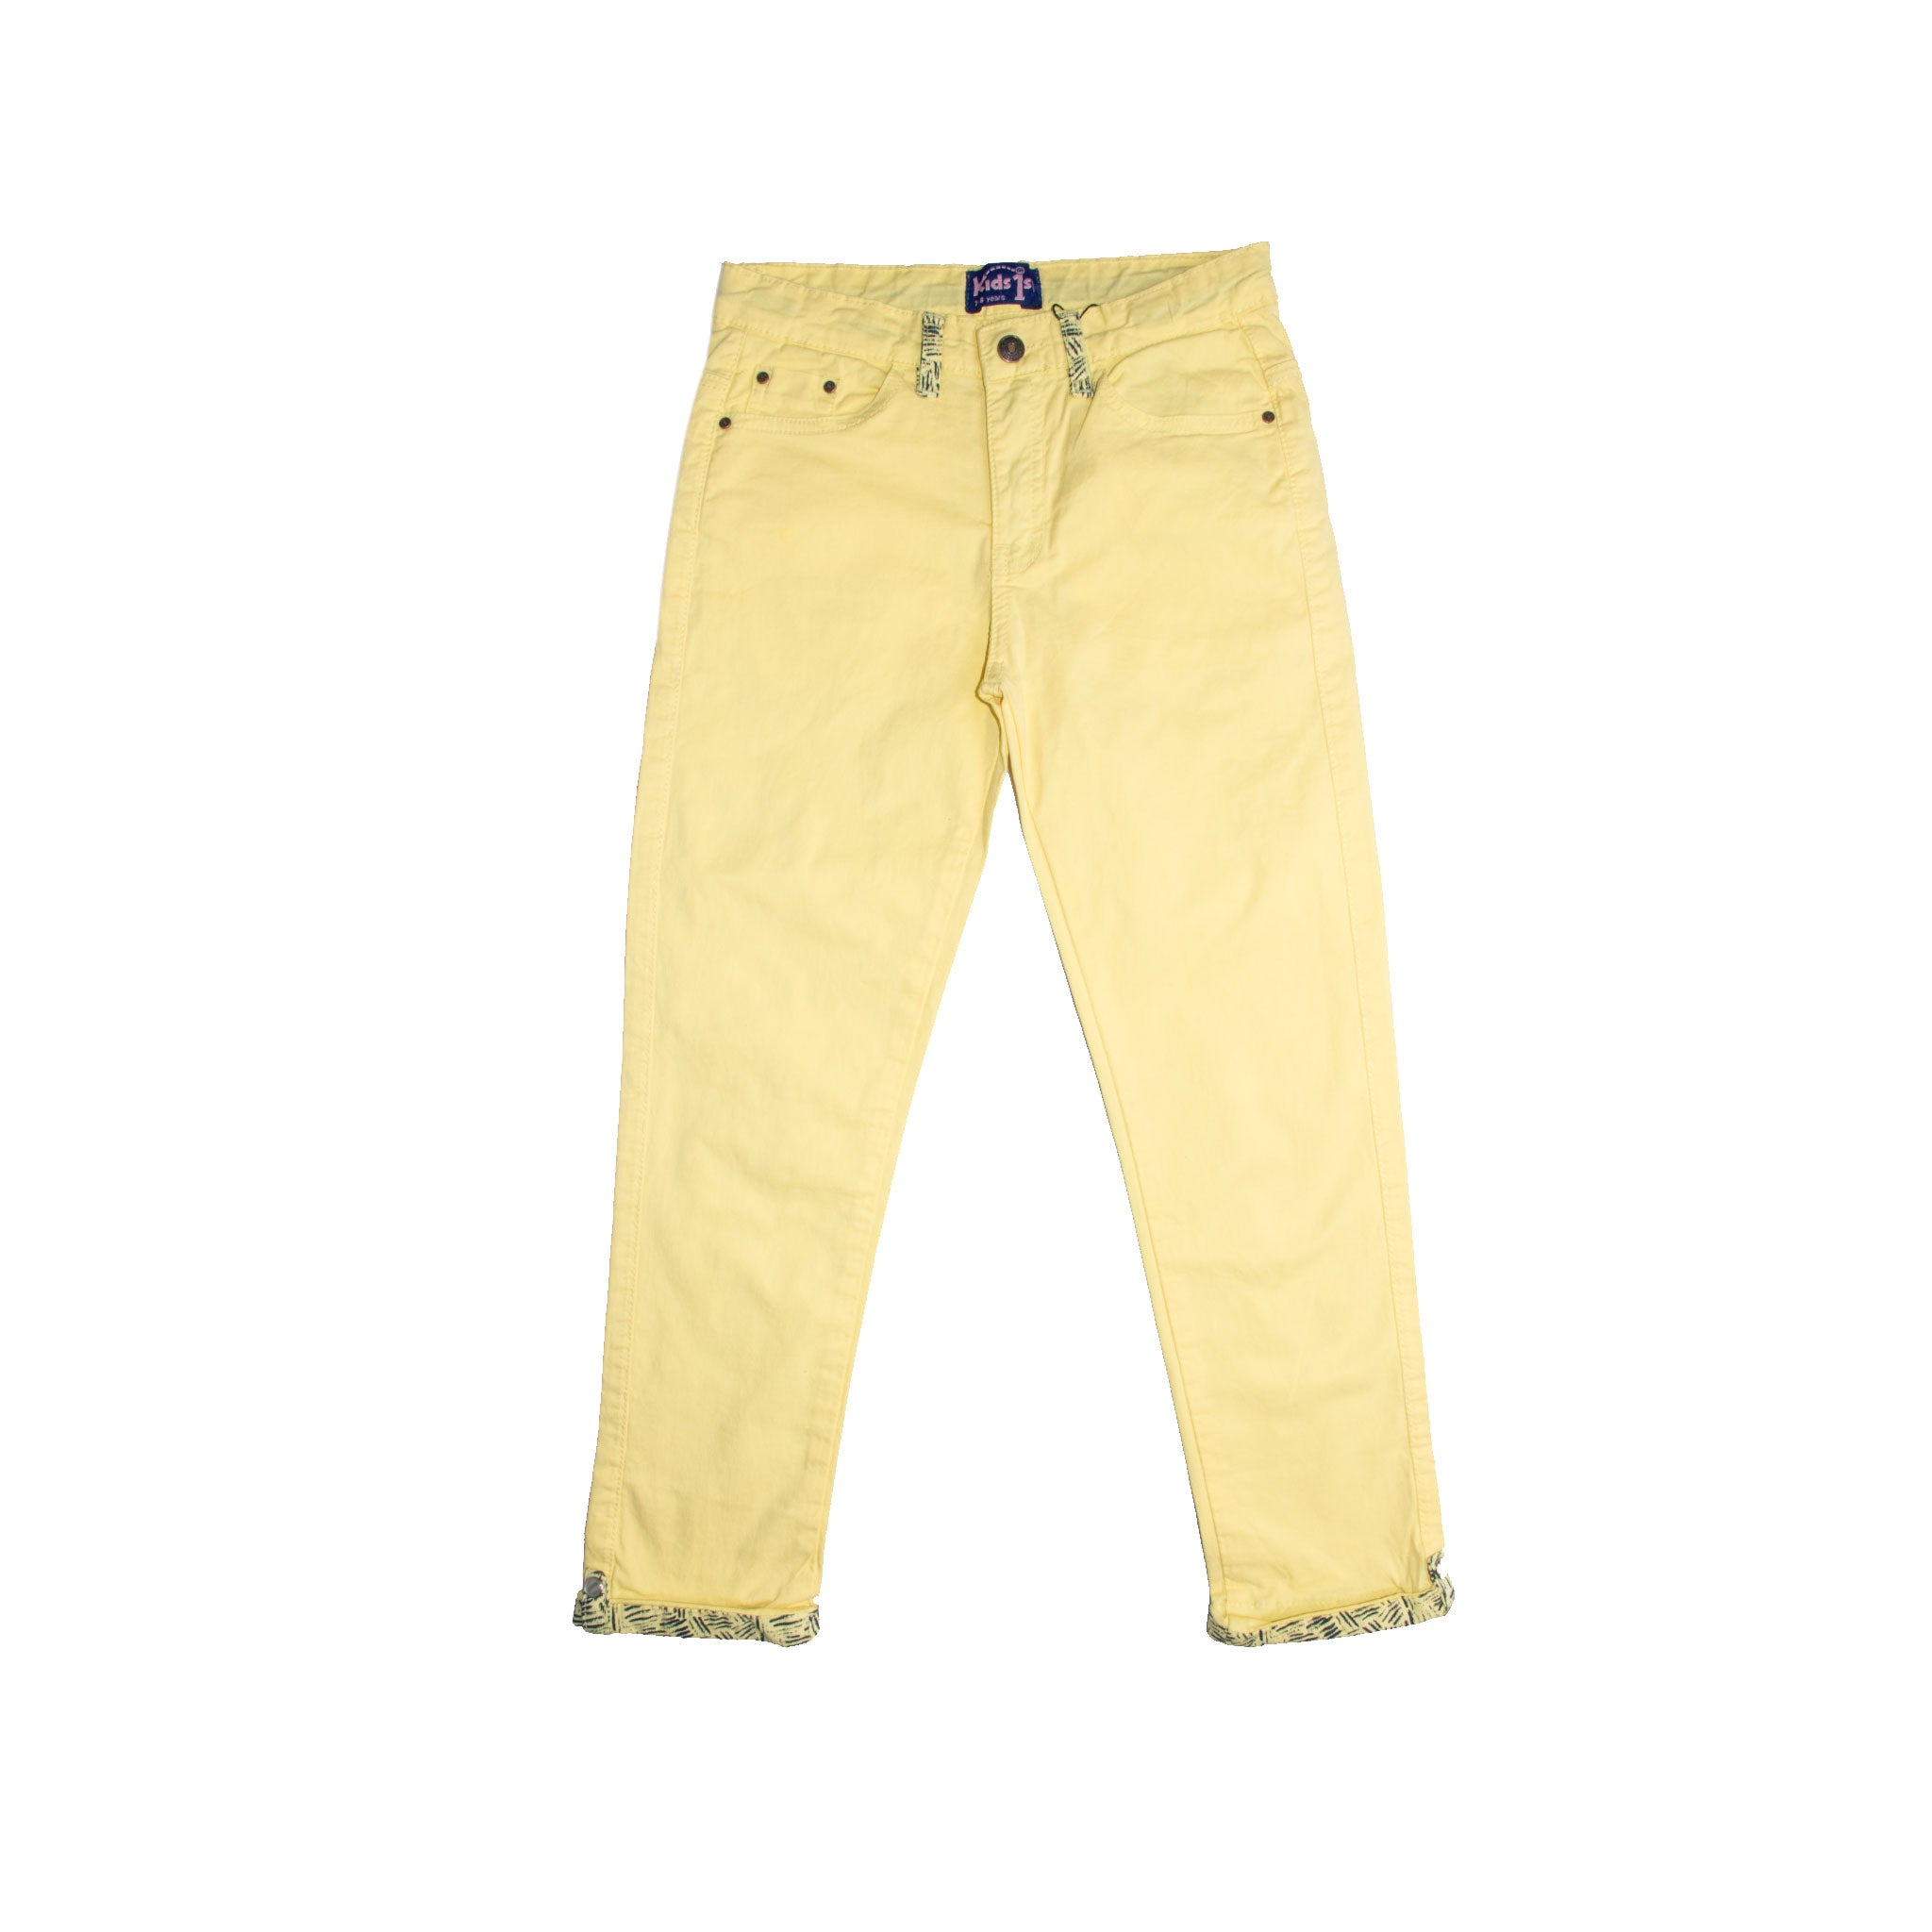 GIRL'S PANT- Yellow - Export Mall